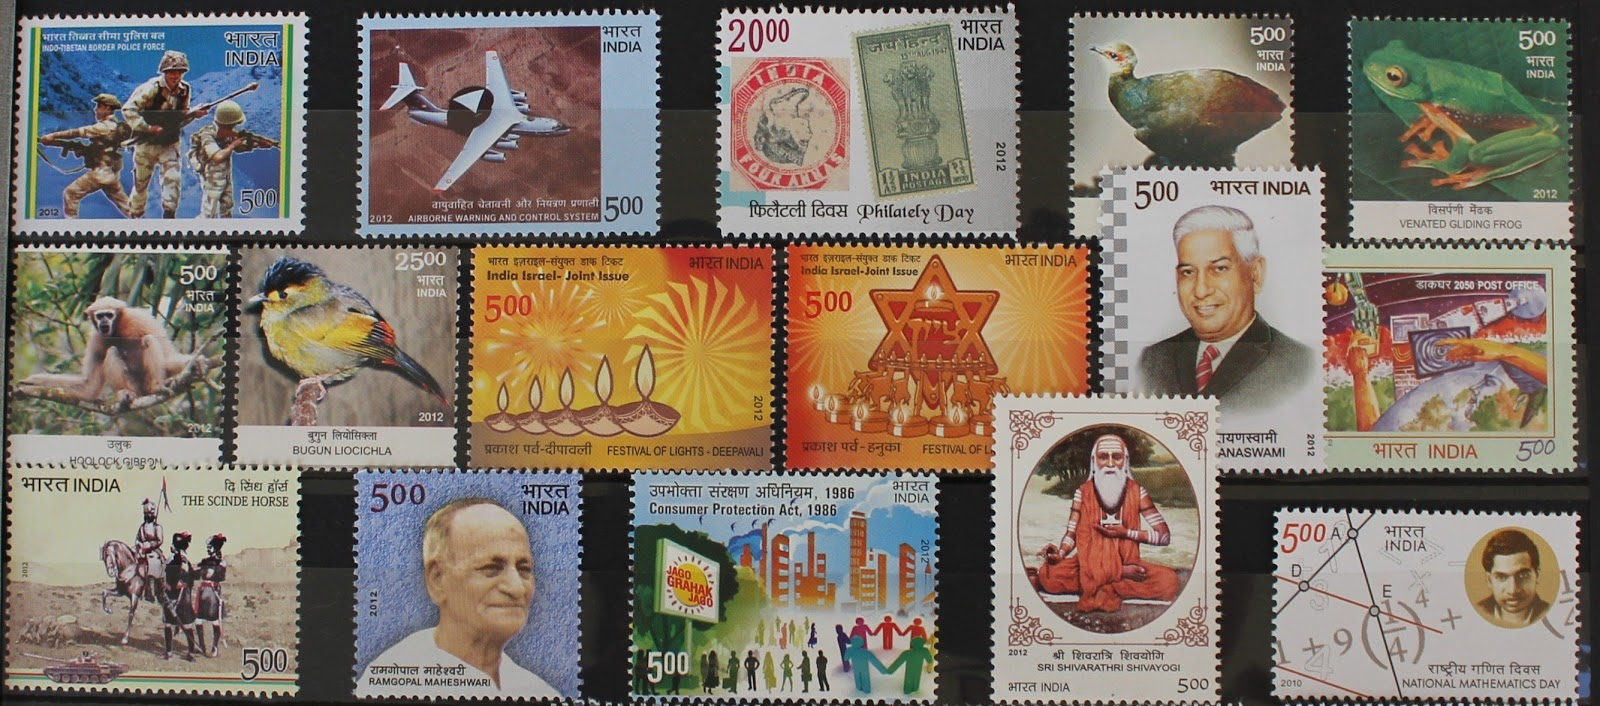 my postage stamps collection india 2012